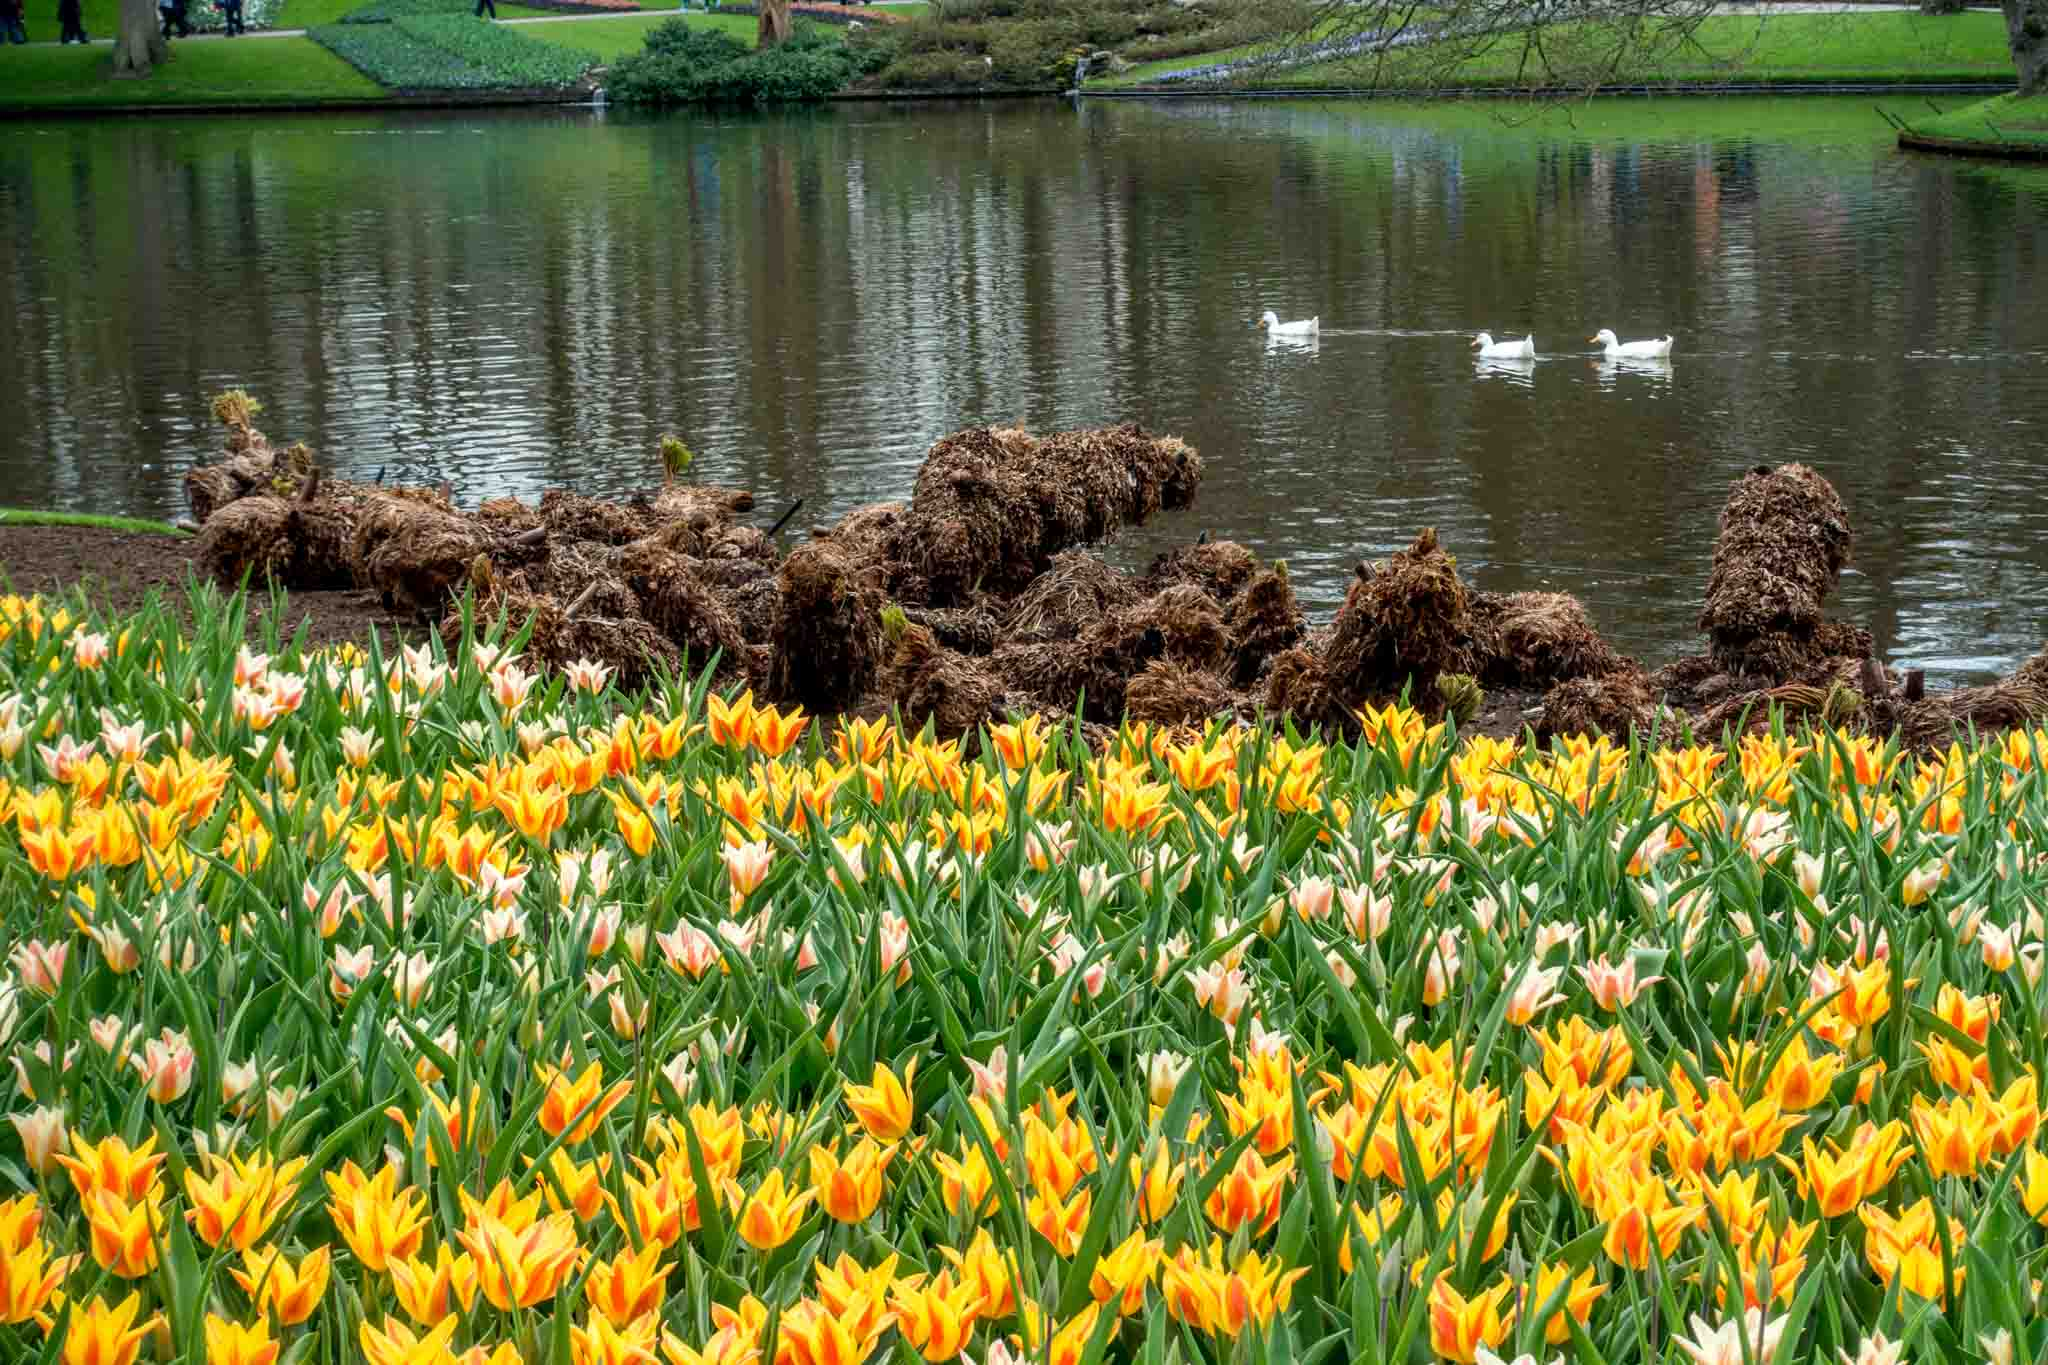 Ducks in a pond surrounded by flowers